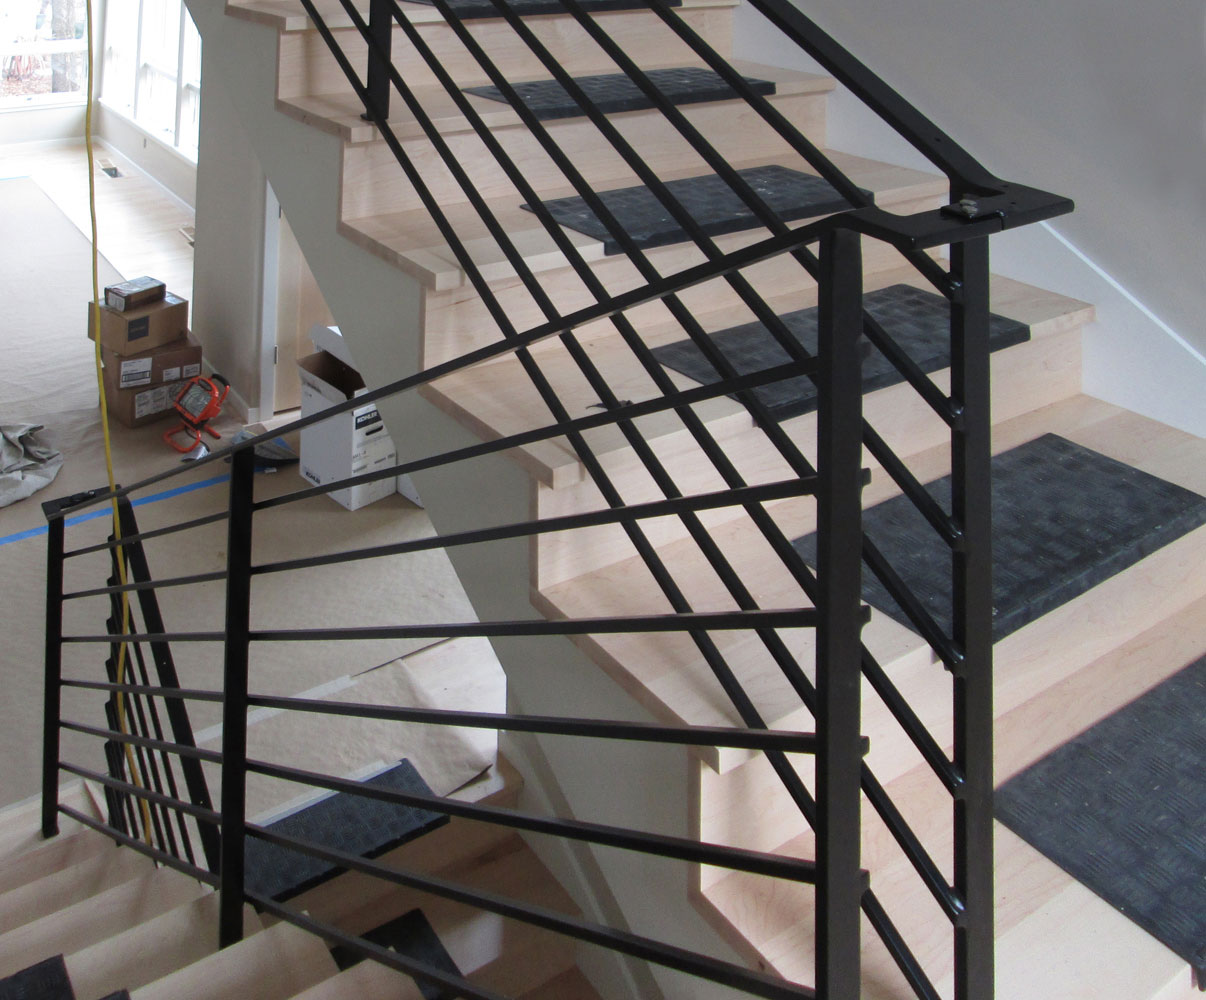 k interior s unit gallery railings commercial multi railing